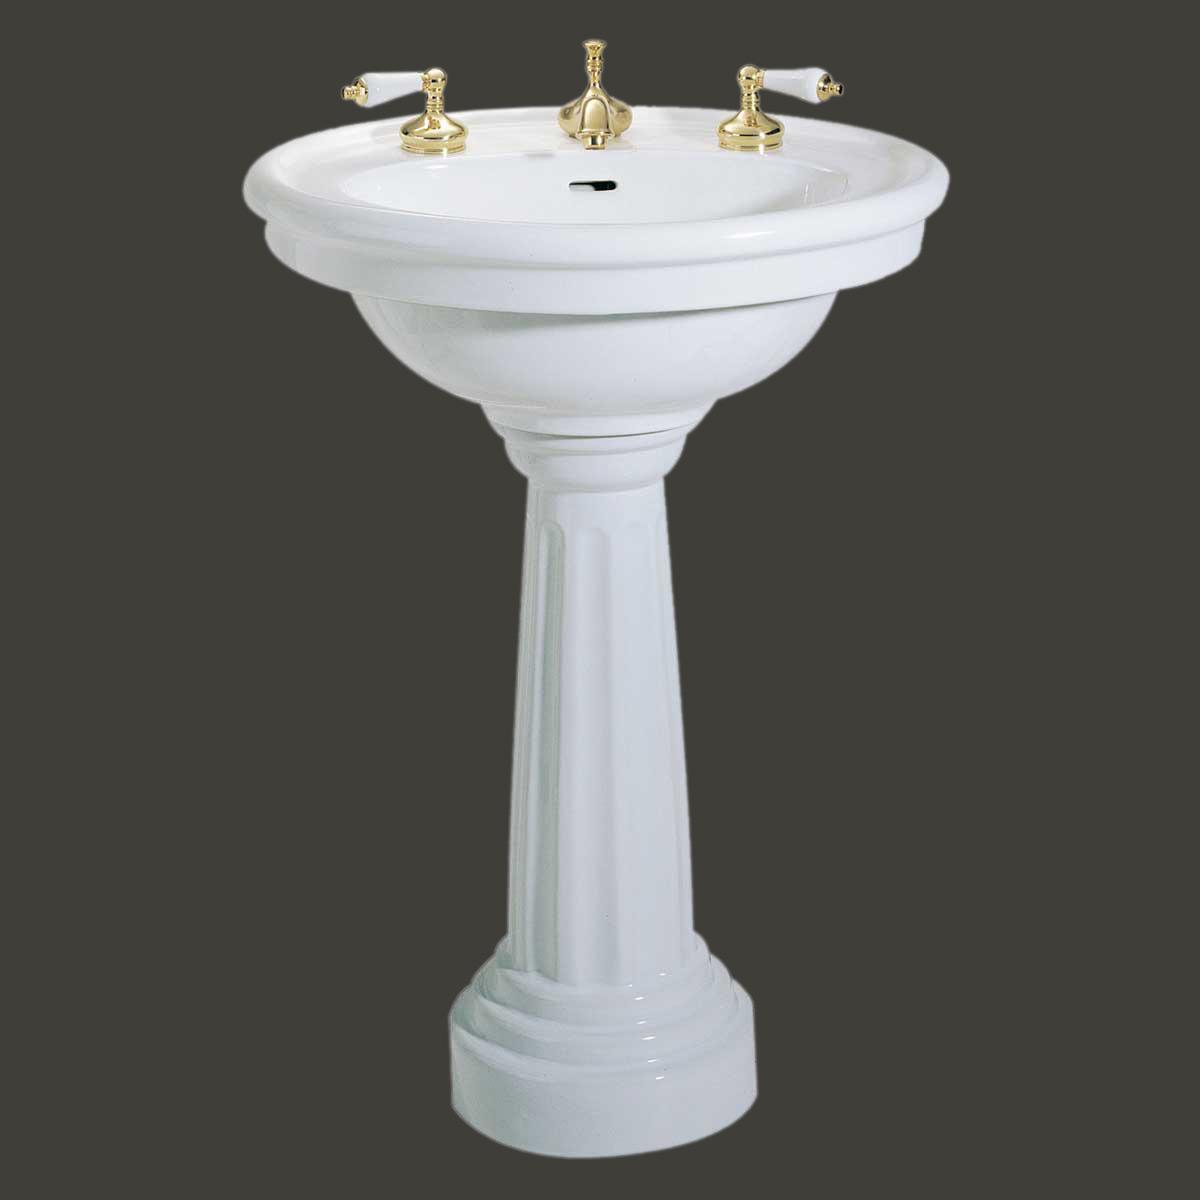 standing pedestal sink white china 8 widespread bathroom fixture. Black Bedroom Furniture Sets. Home Design Ideas